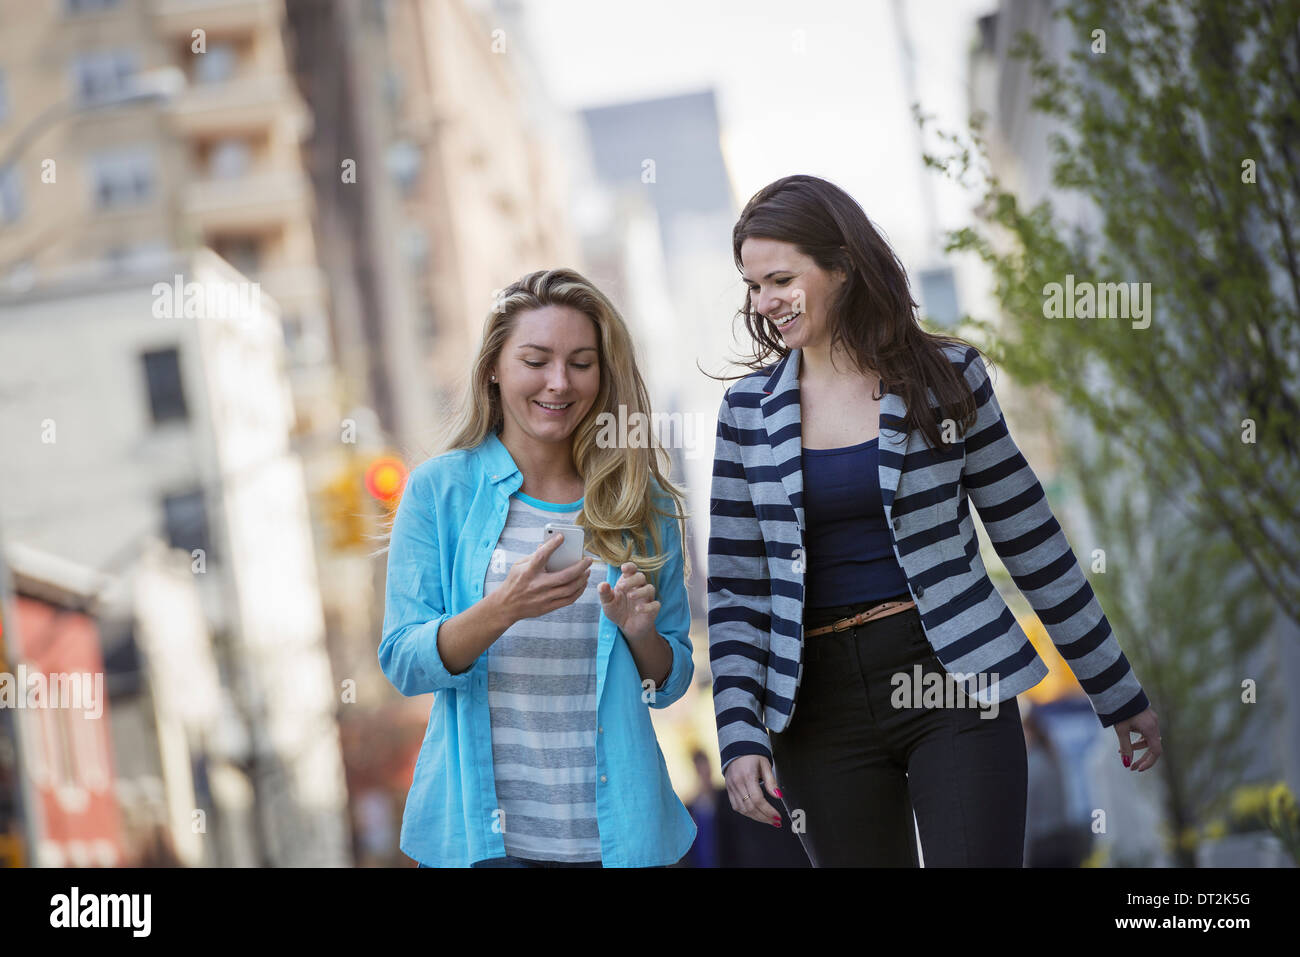 People outdoors in New York city in spring time Two women walking one checking her cell phone - Stock Image